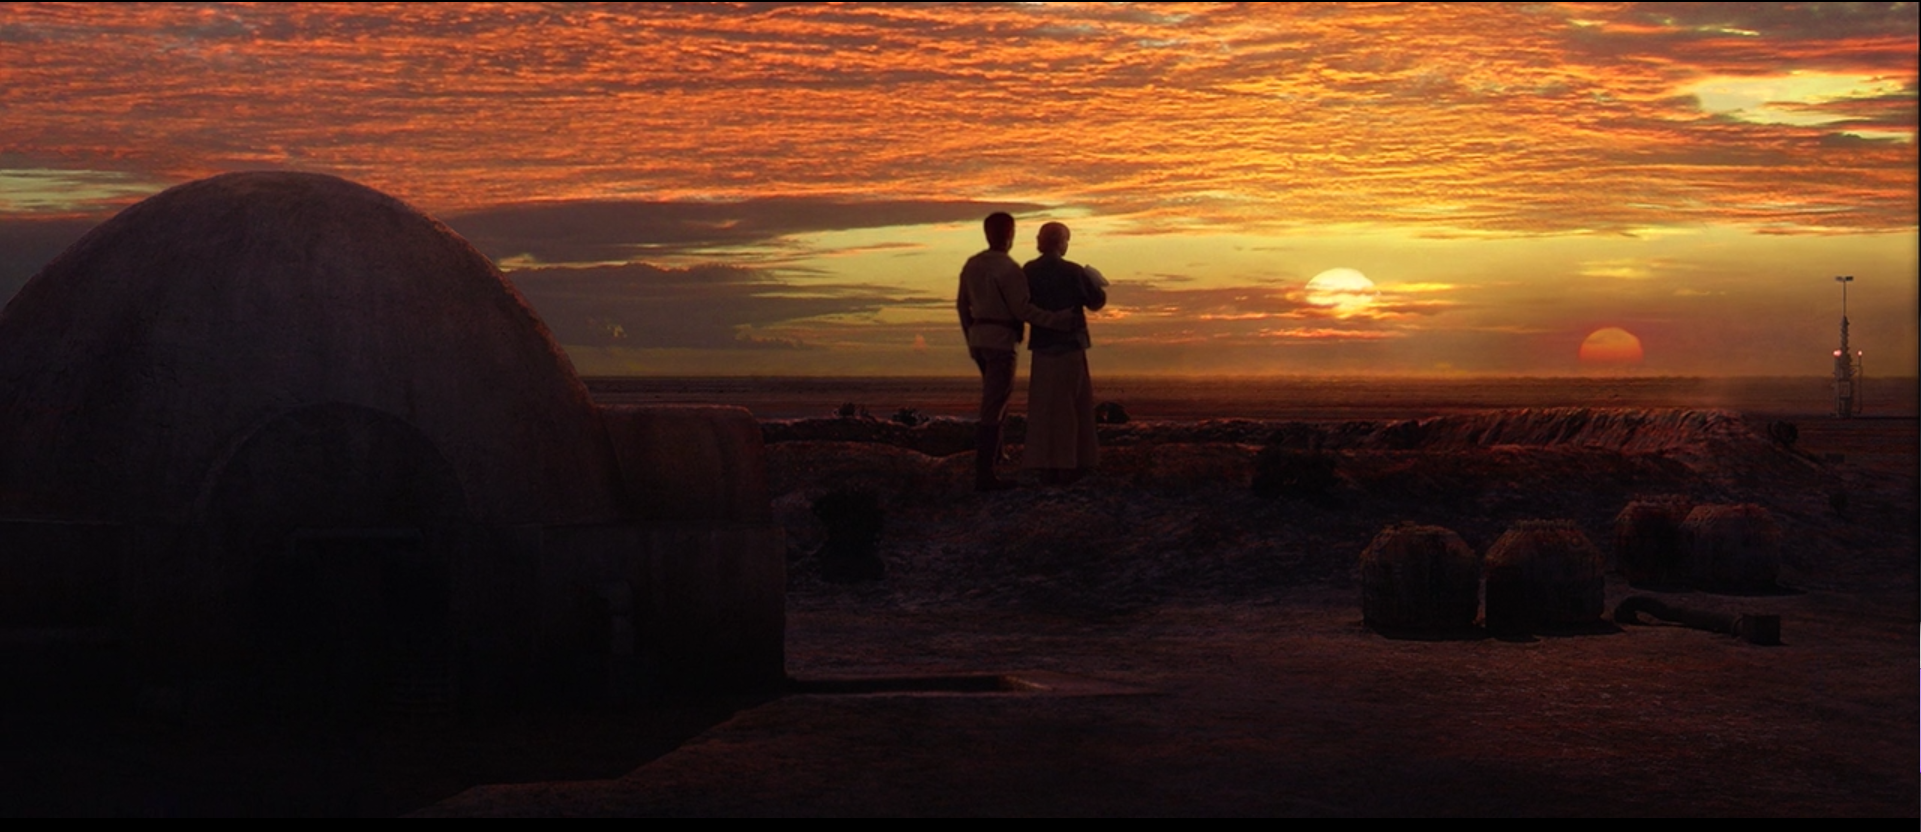 Skywalker Foster Parents Tatooine 2